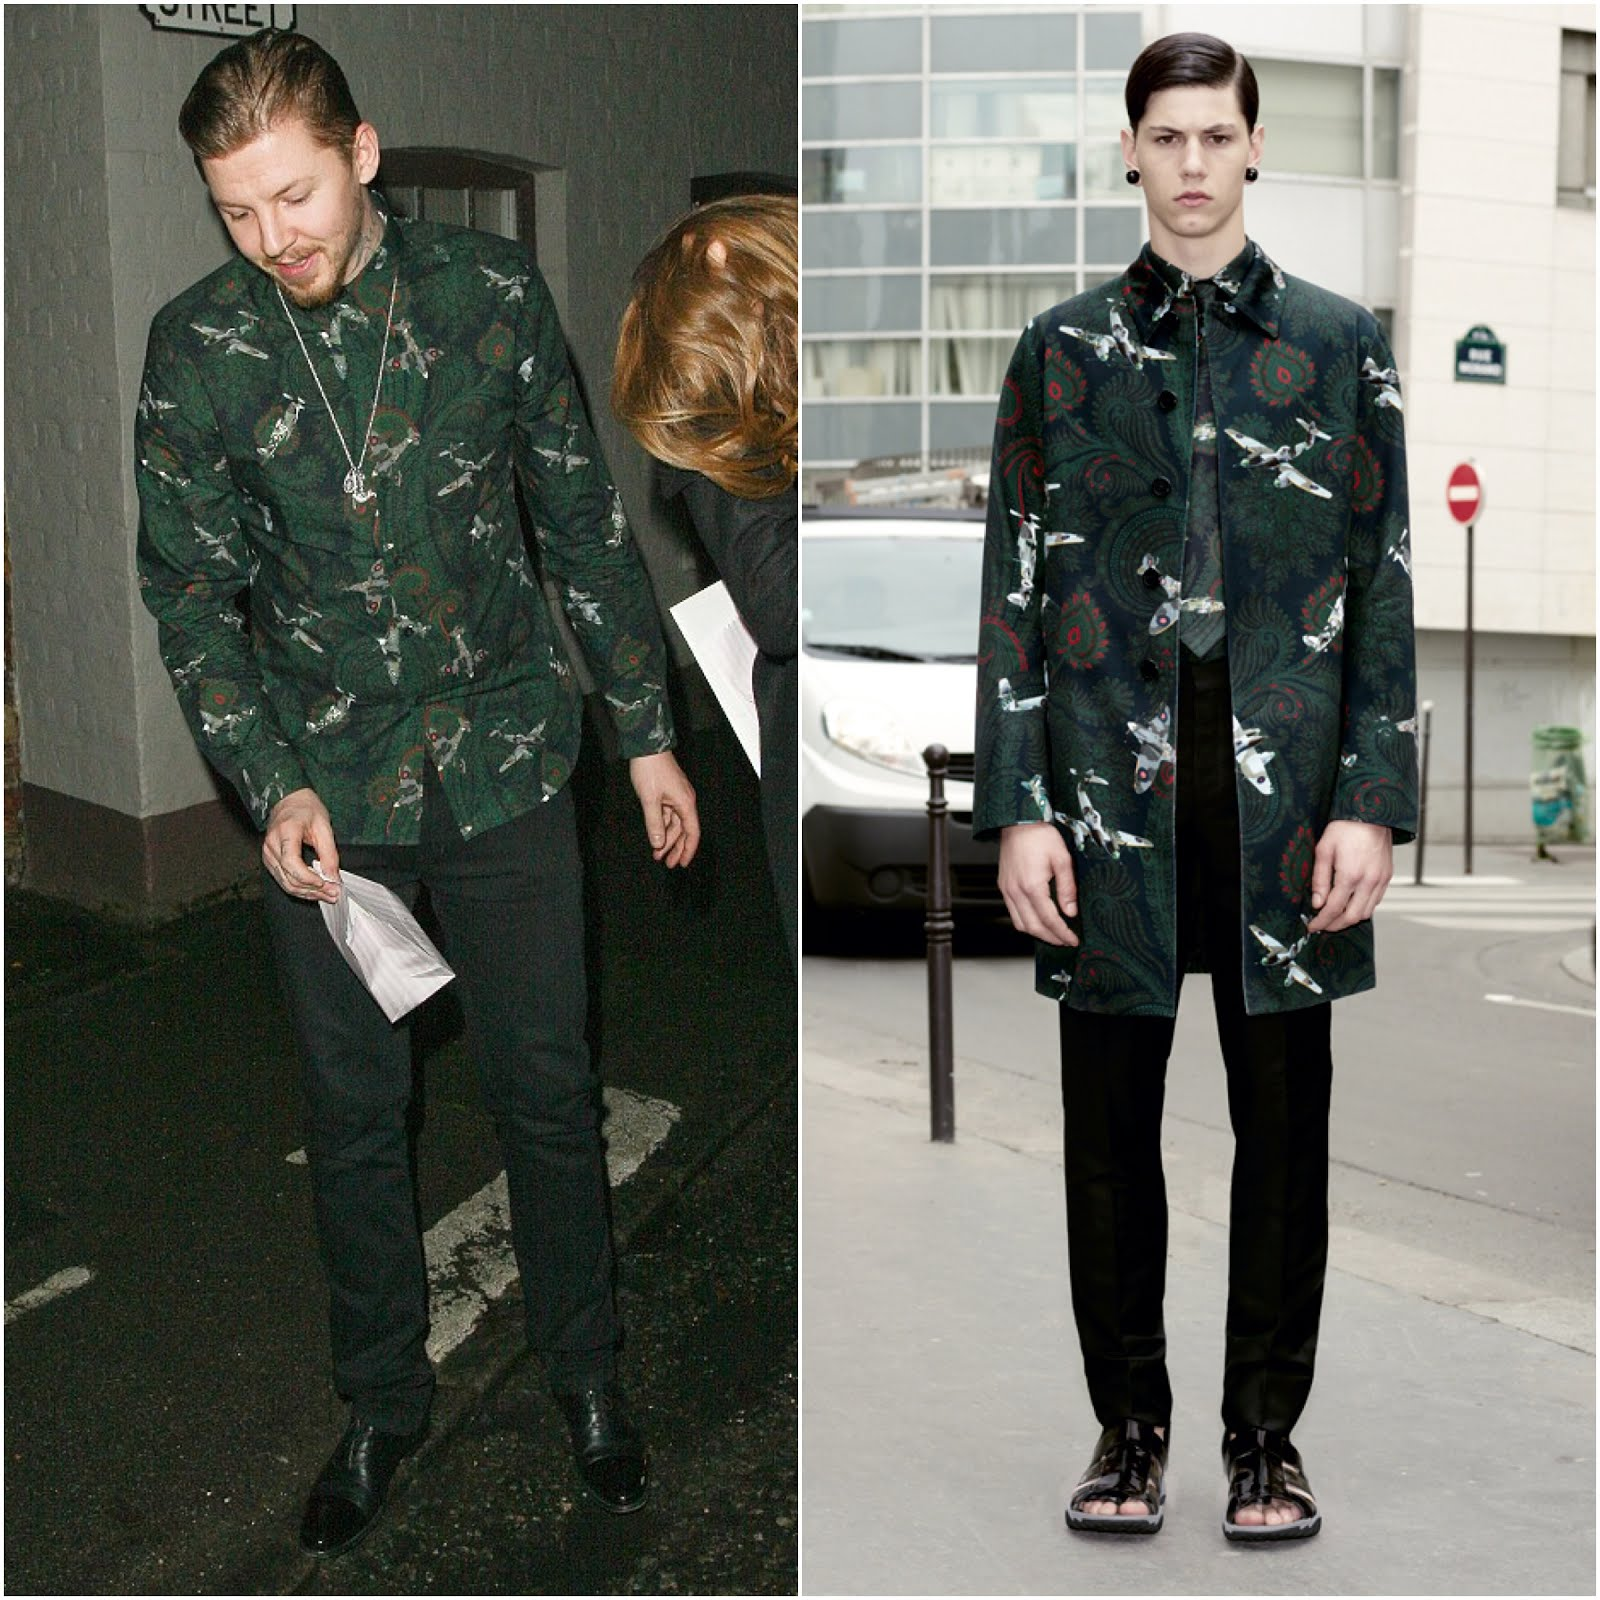 00O00 London Menswear Blog Professor Green in Givenchy - Heston Blumenthal's Fat Duck restaurant